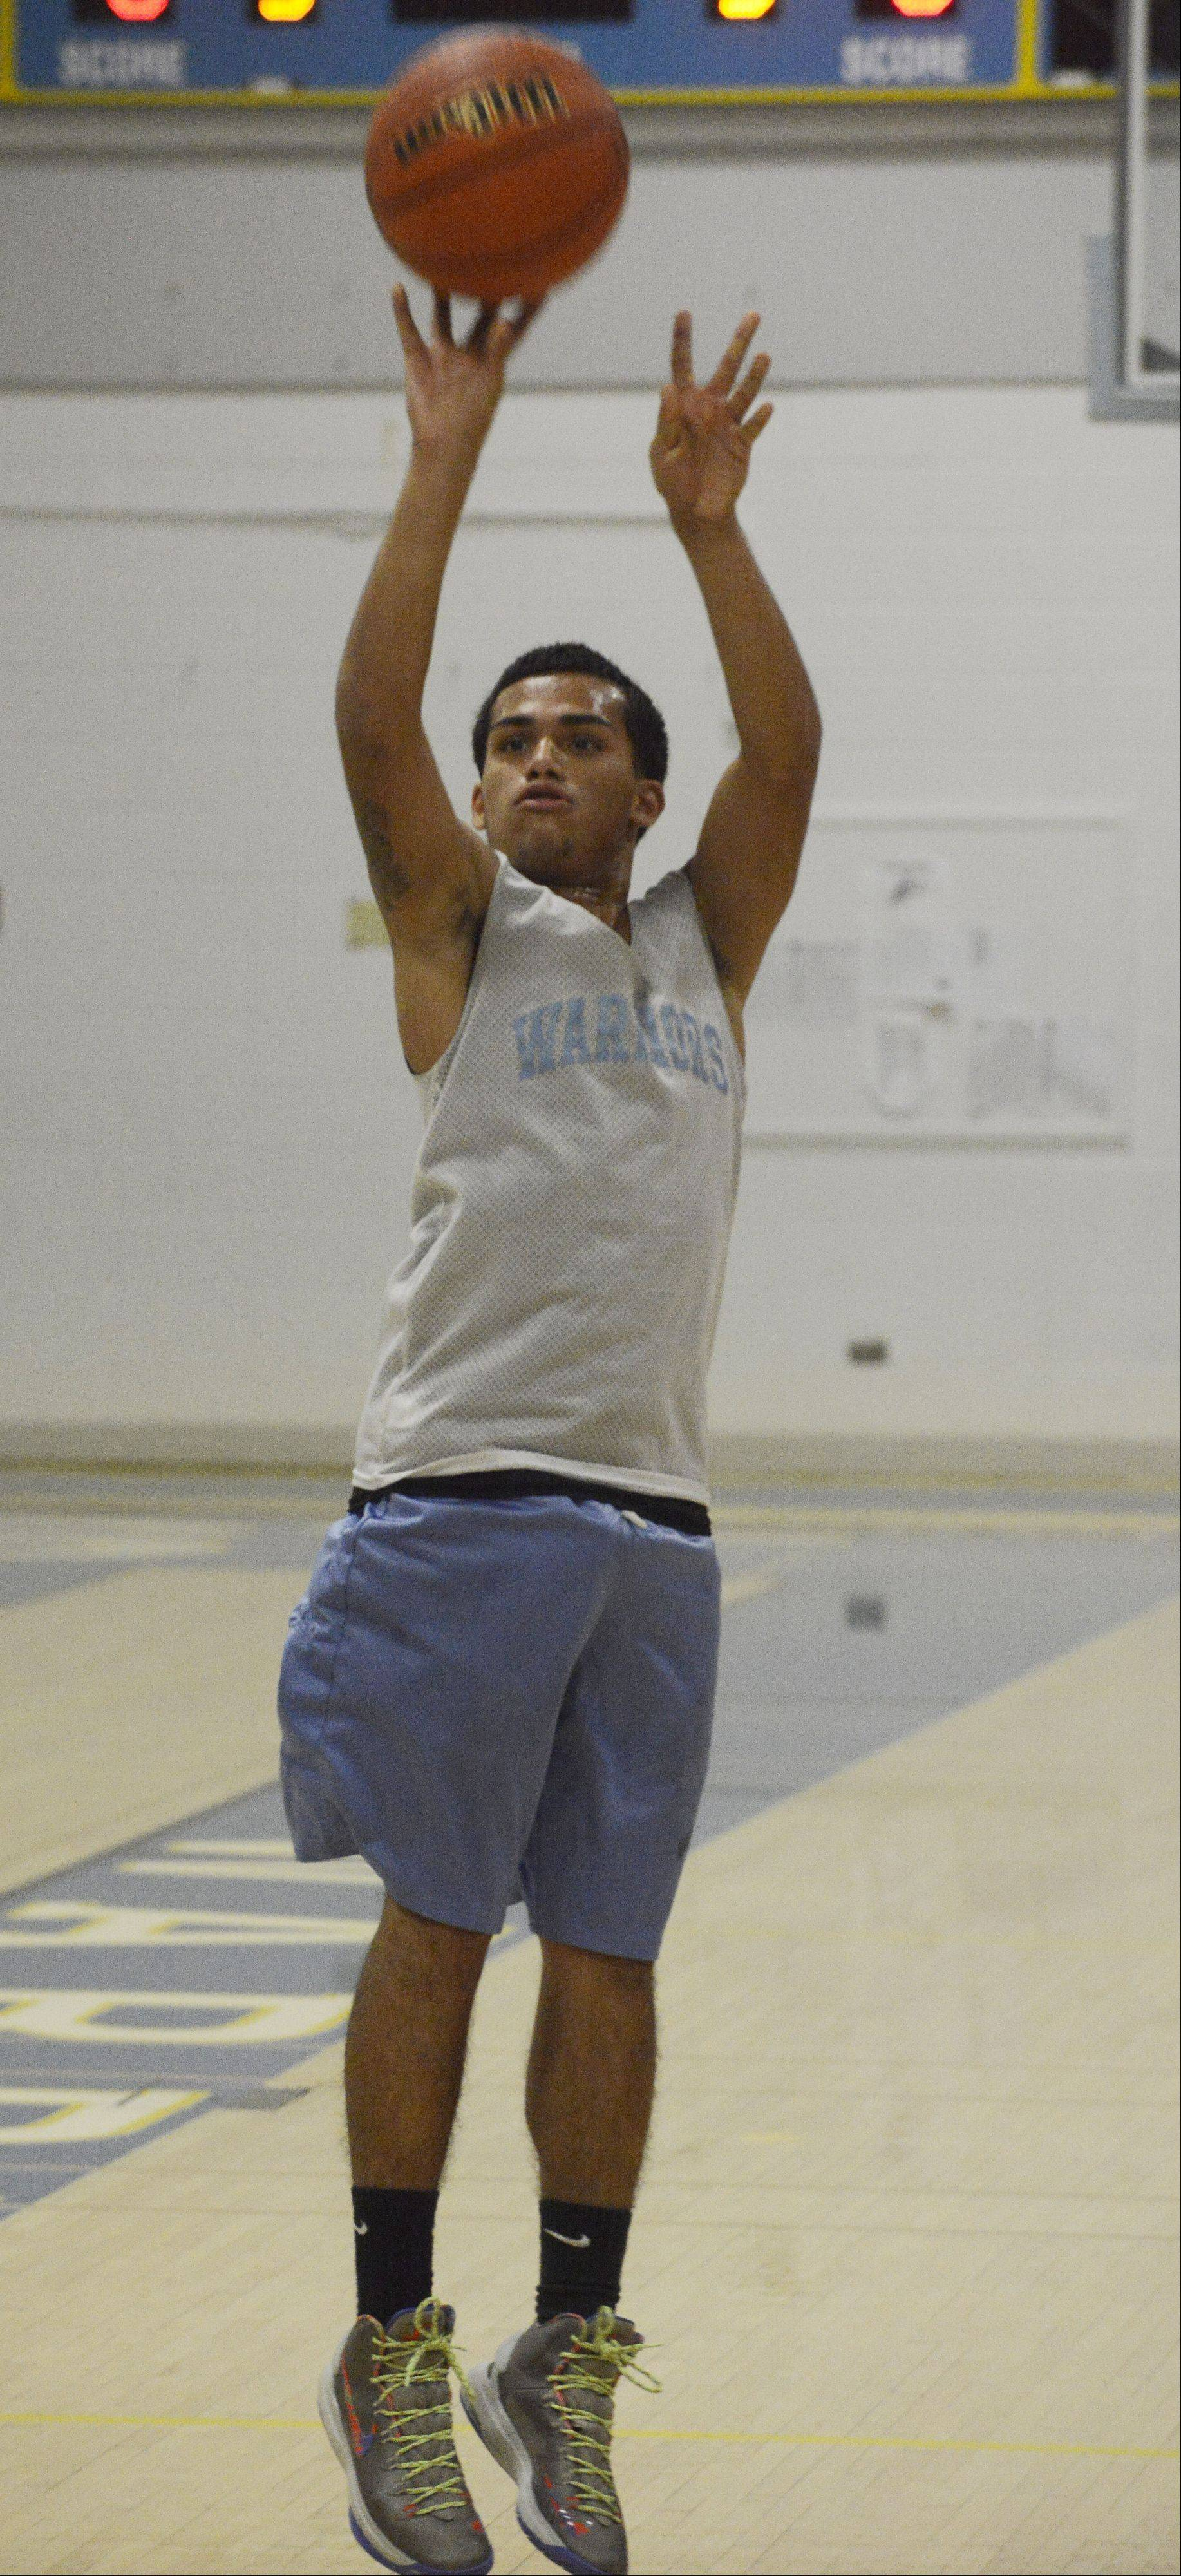 Maine West's Anthony Dones takes a shot during practice.